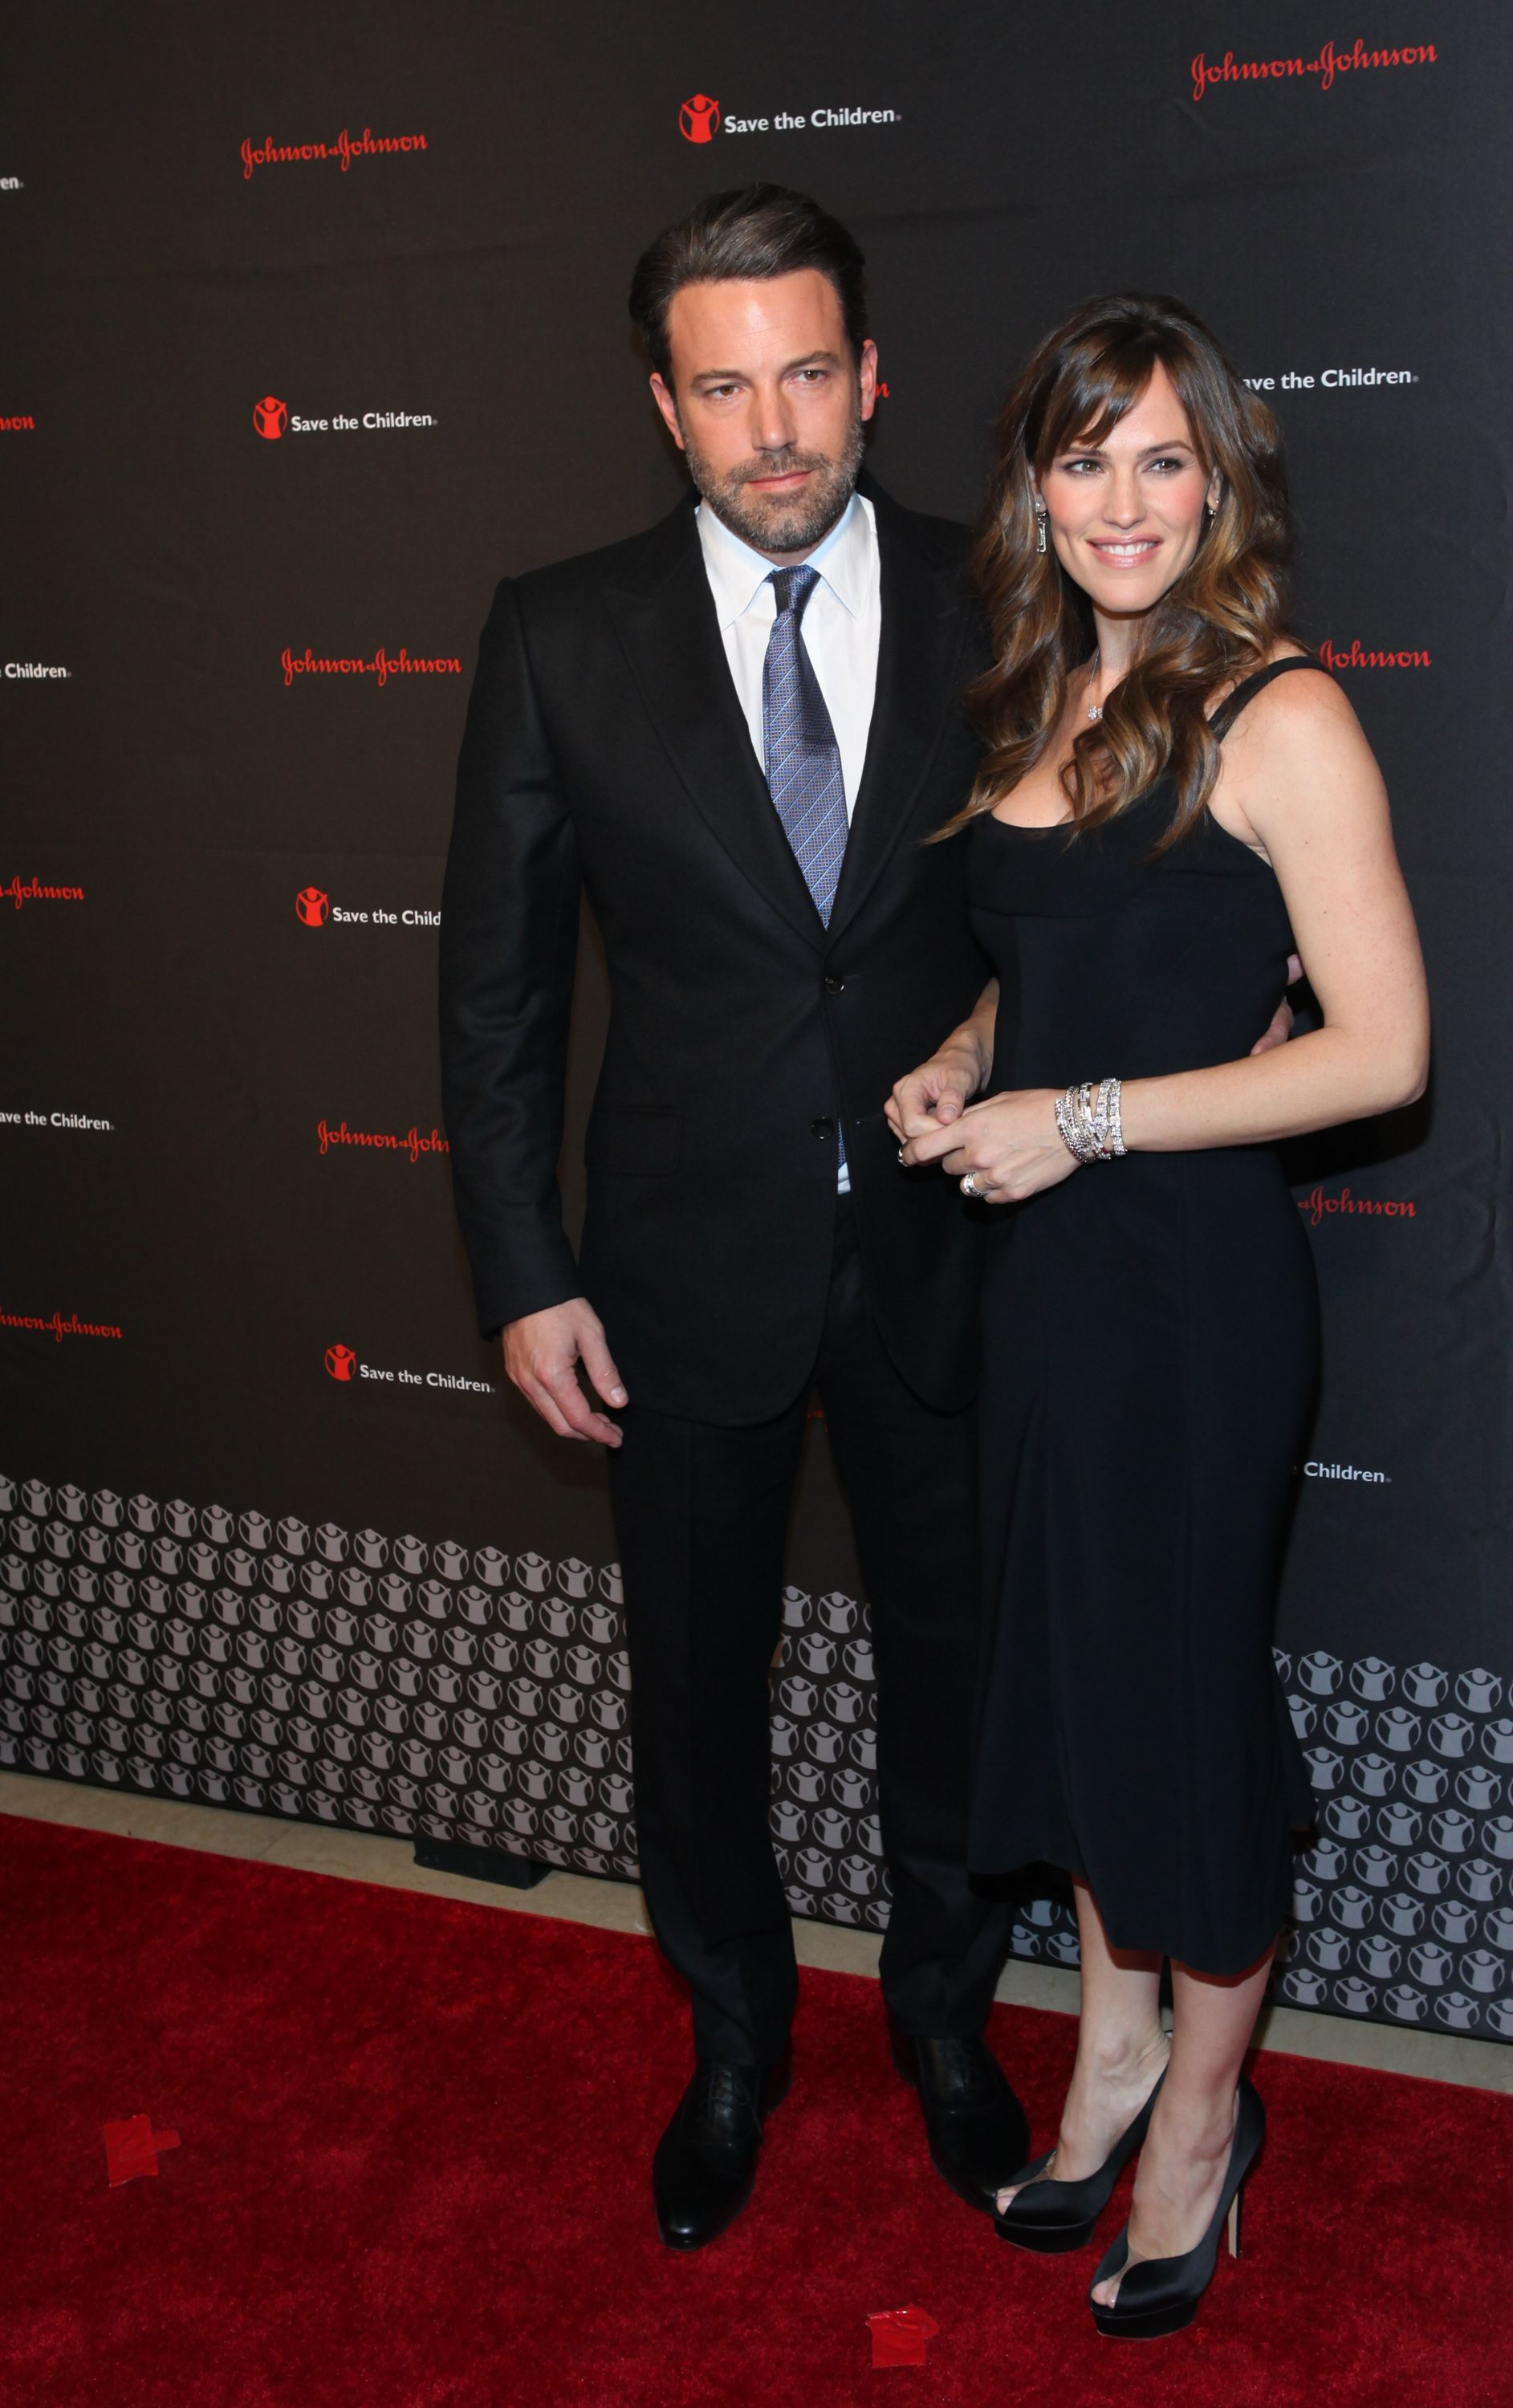 Ben Affleck and Jennifer Garner during the 2nd Annual Save the Children Illumination Gala at The Plaza Hotel on November 19, 2014. | Photo: Getty Images